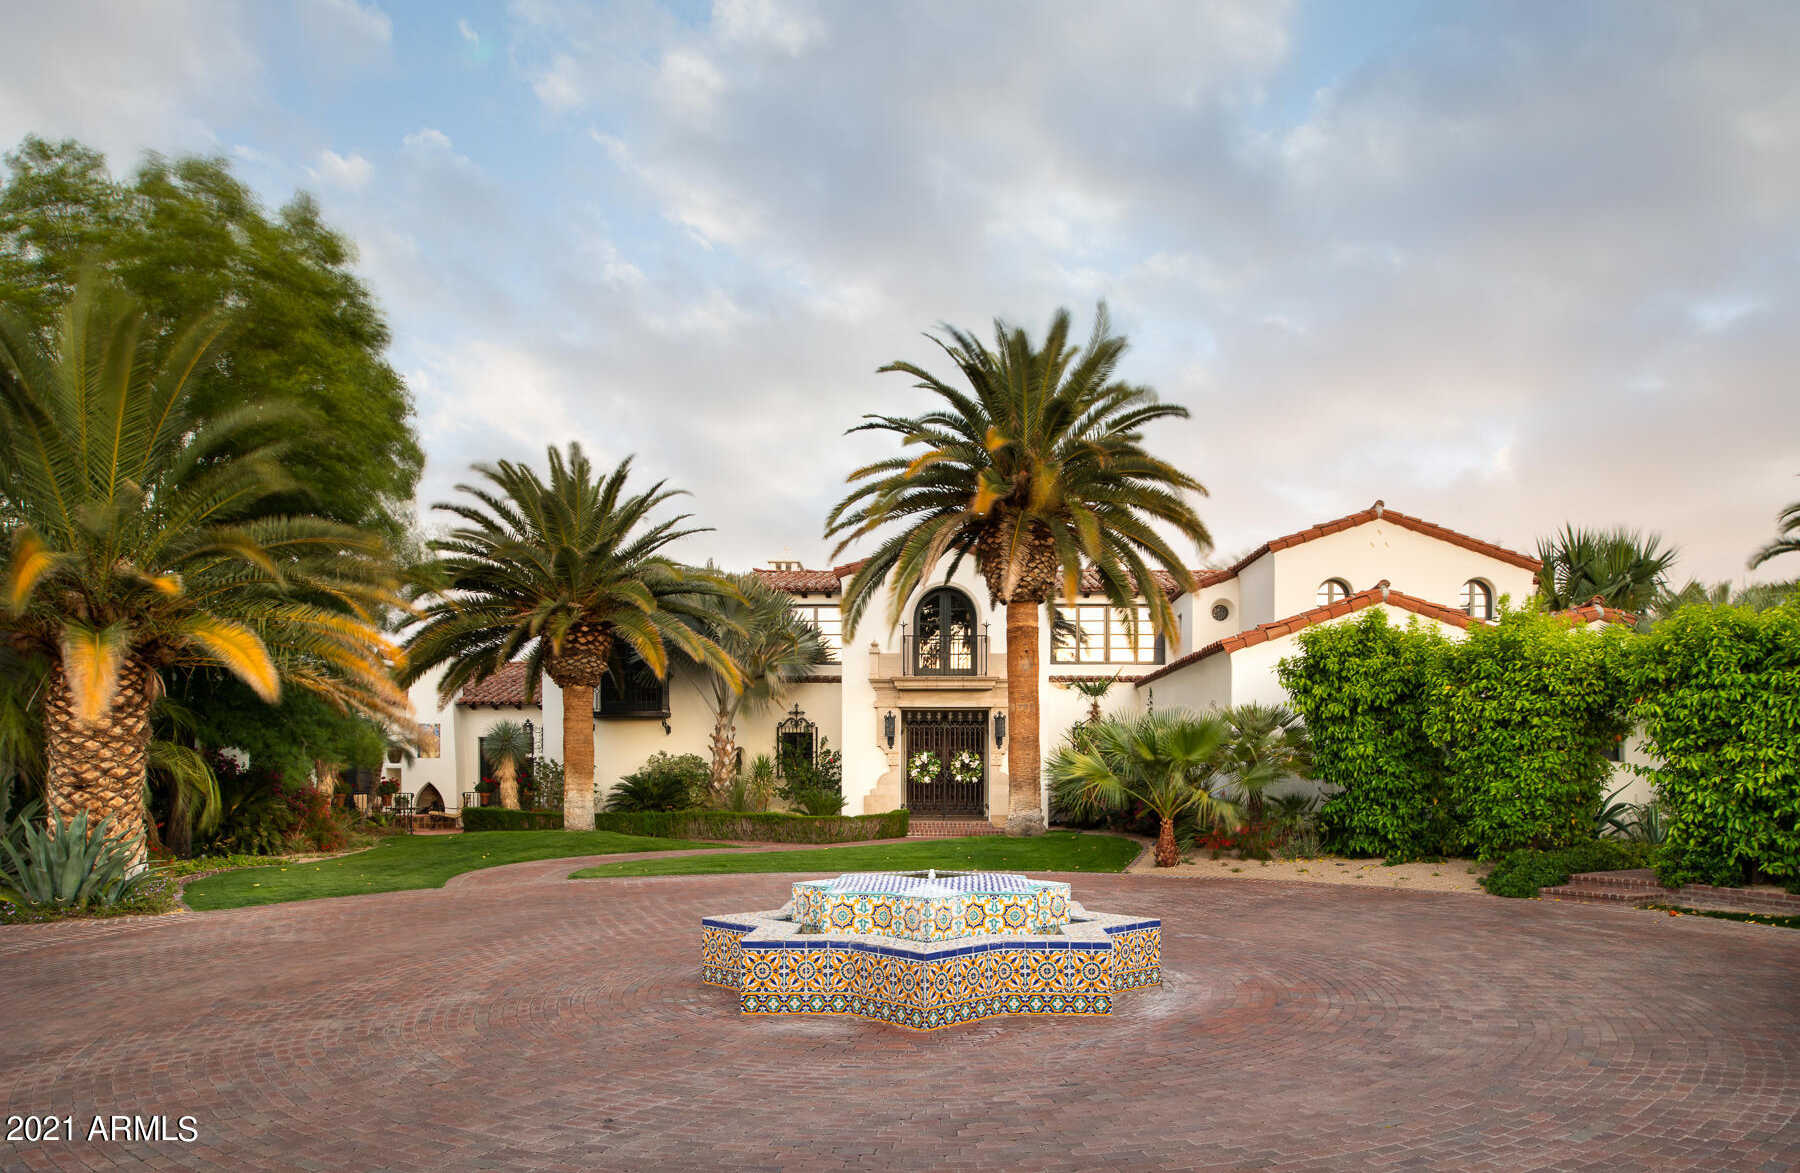 $7,950,000 - 5Br/7Ba - Home for Sale in E2 S2 Nw4 Se4 Nw4 Ex E 33, Paradise Valley